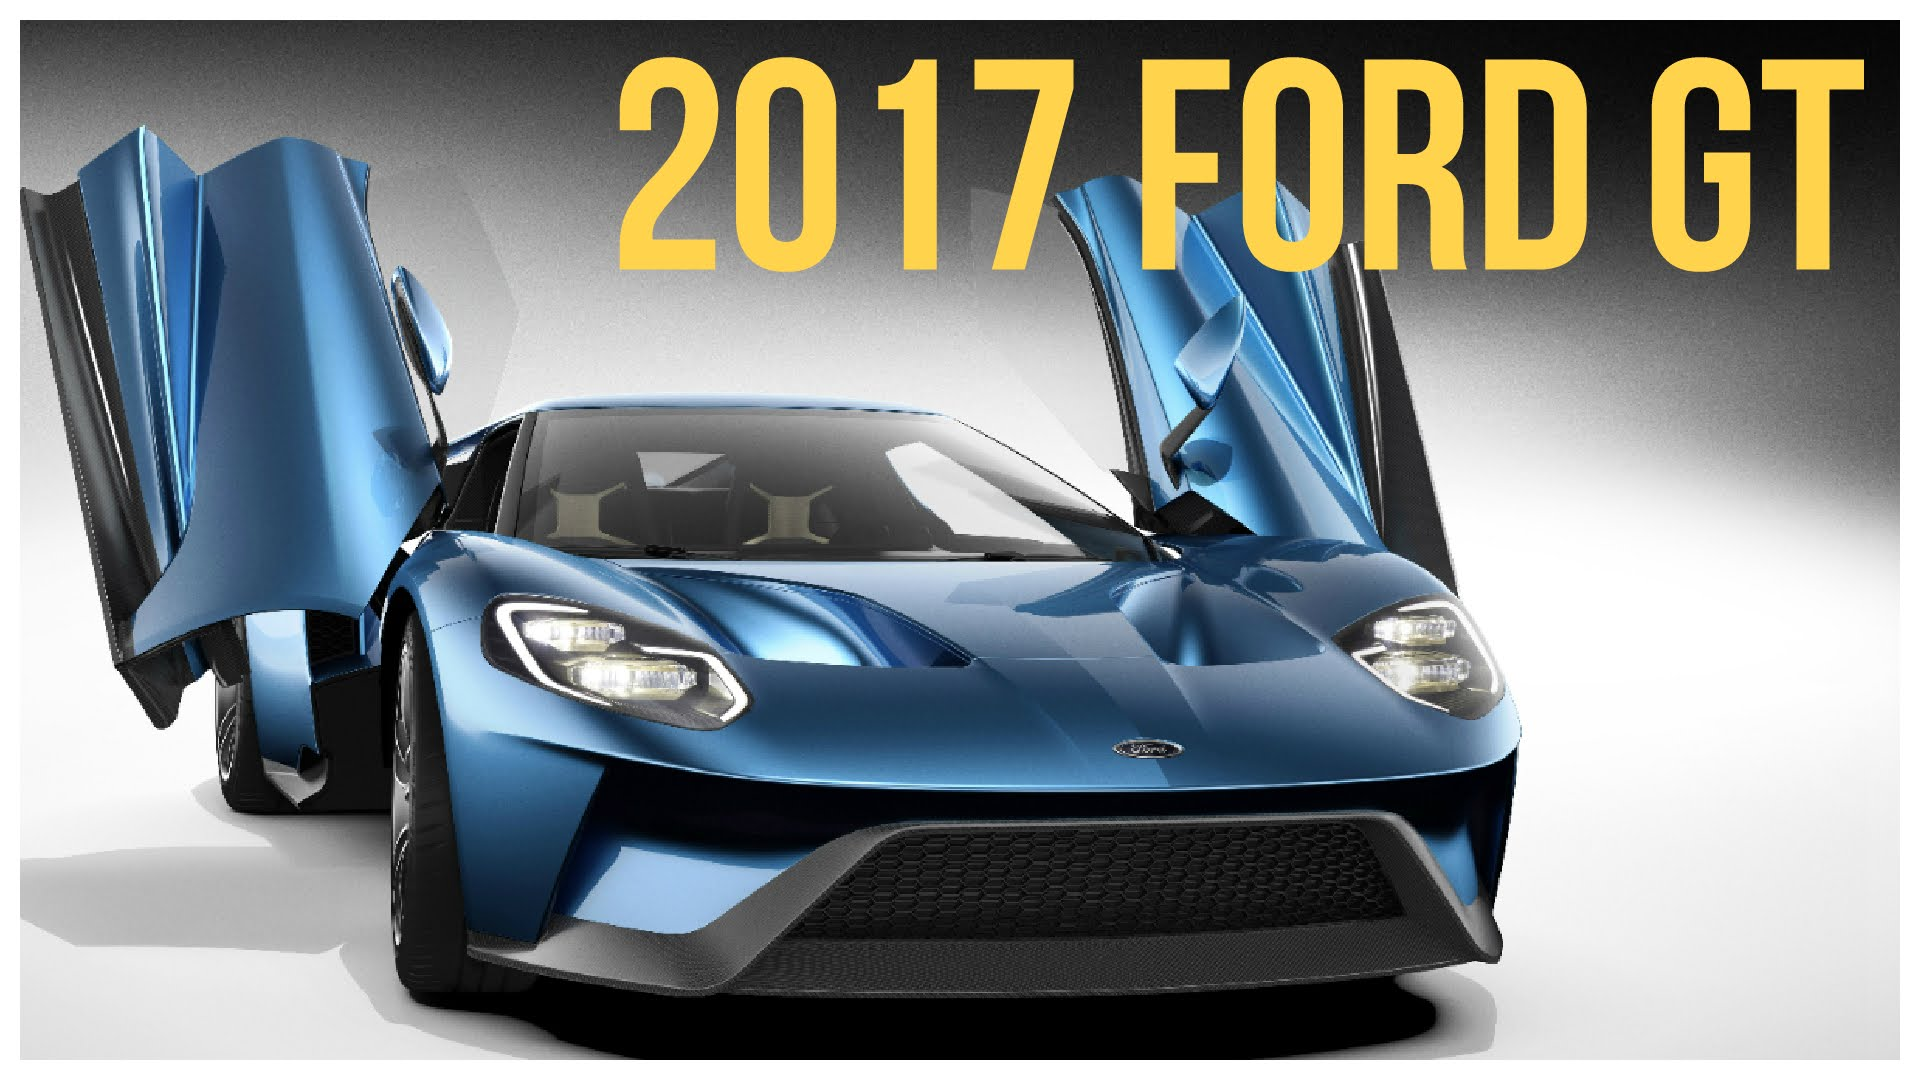 2017 Ford GT Interior and Exterior